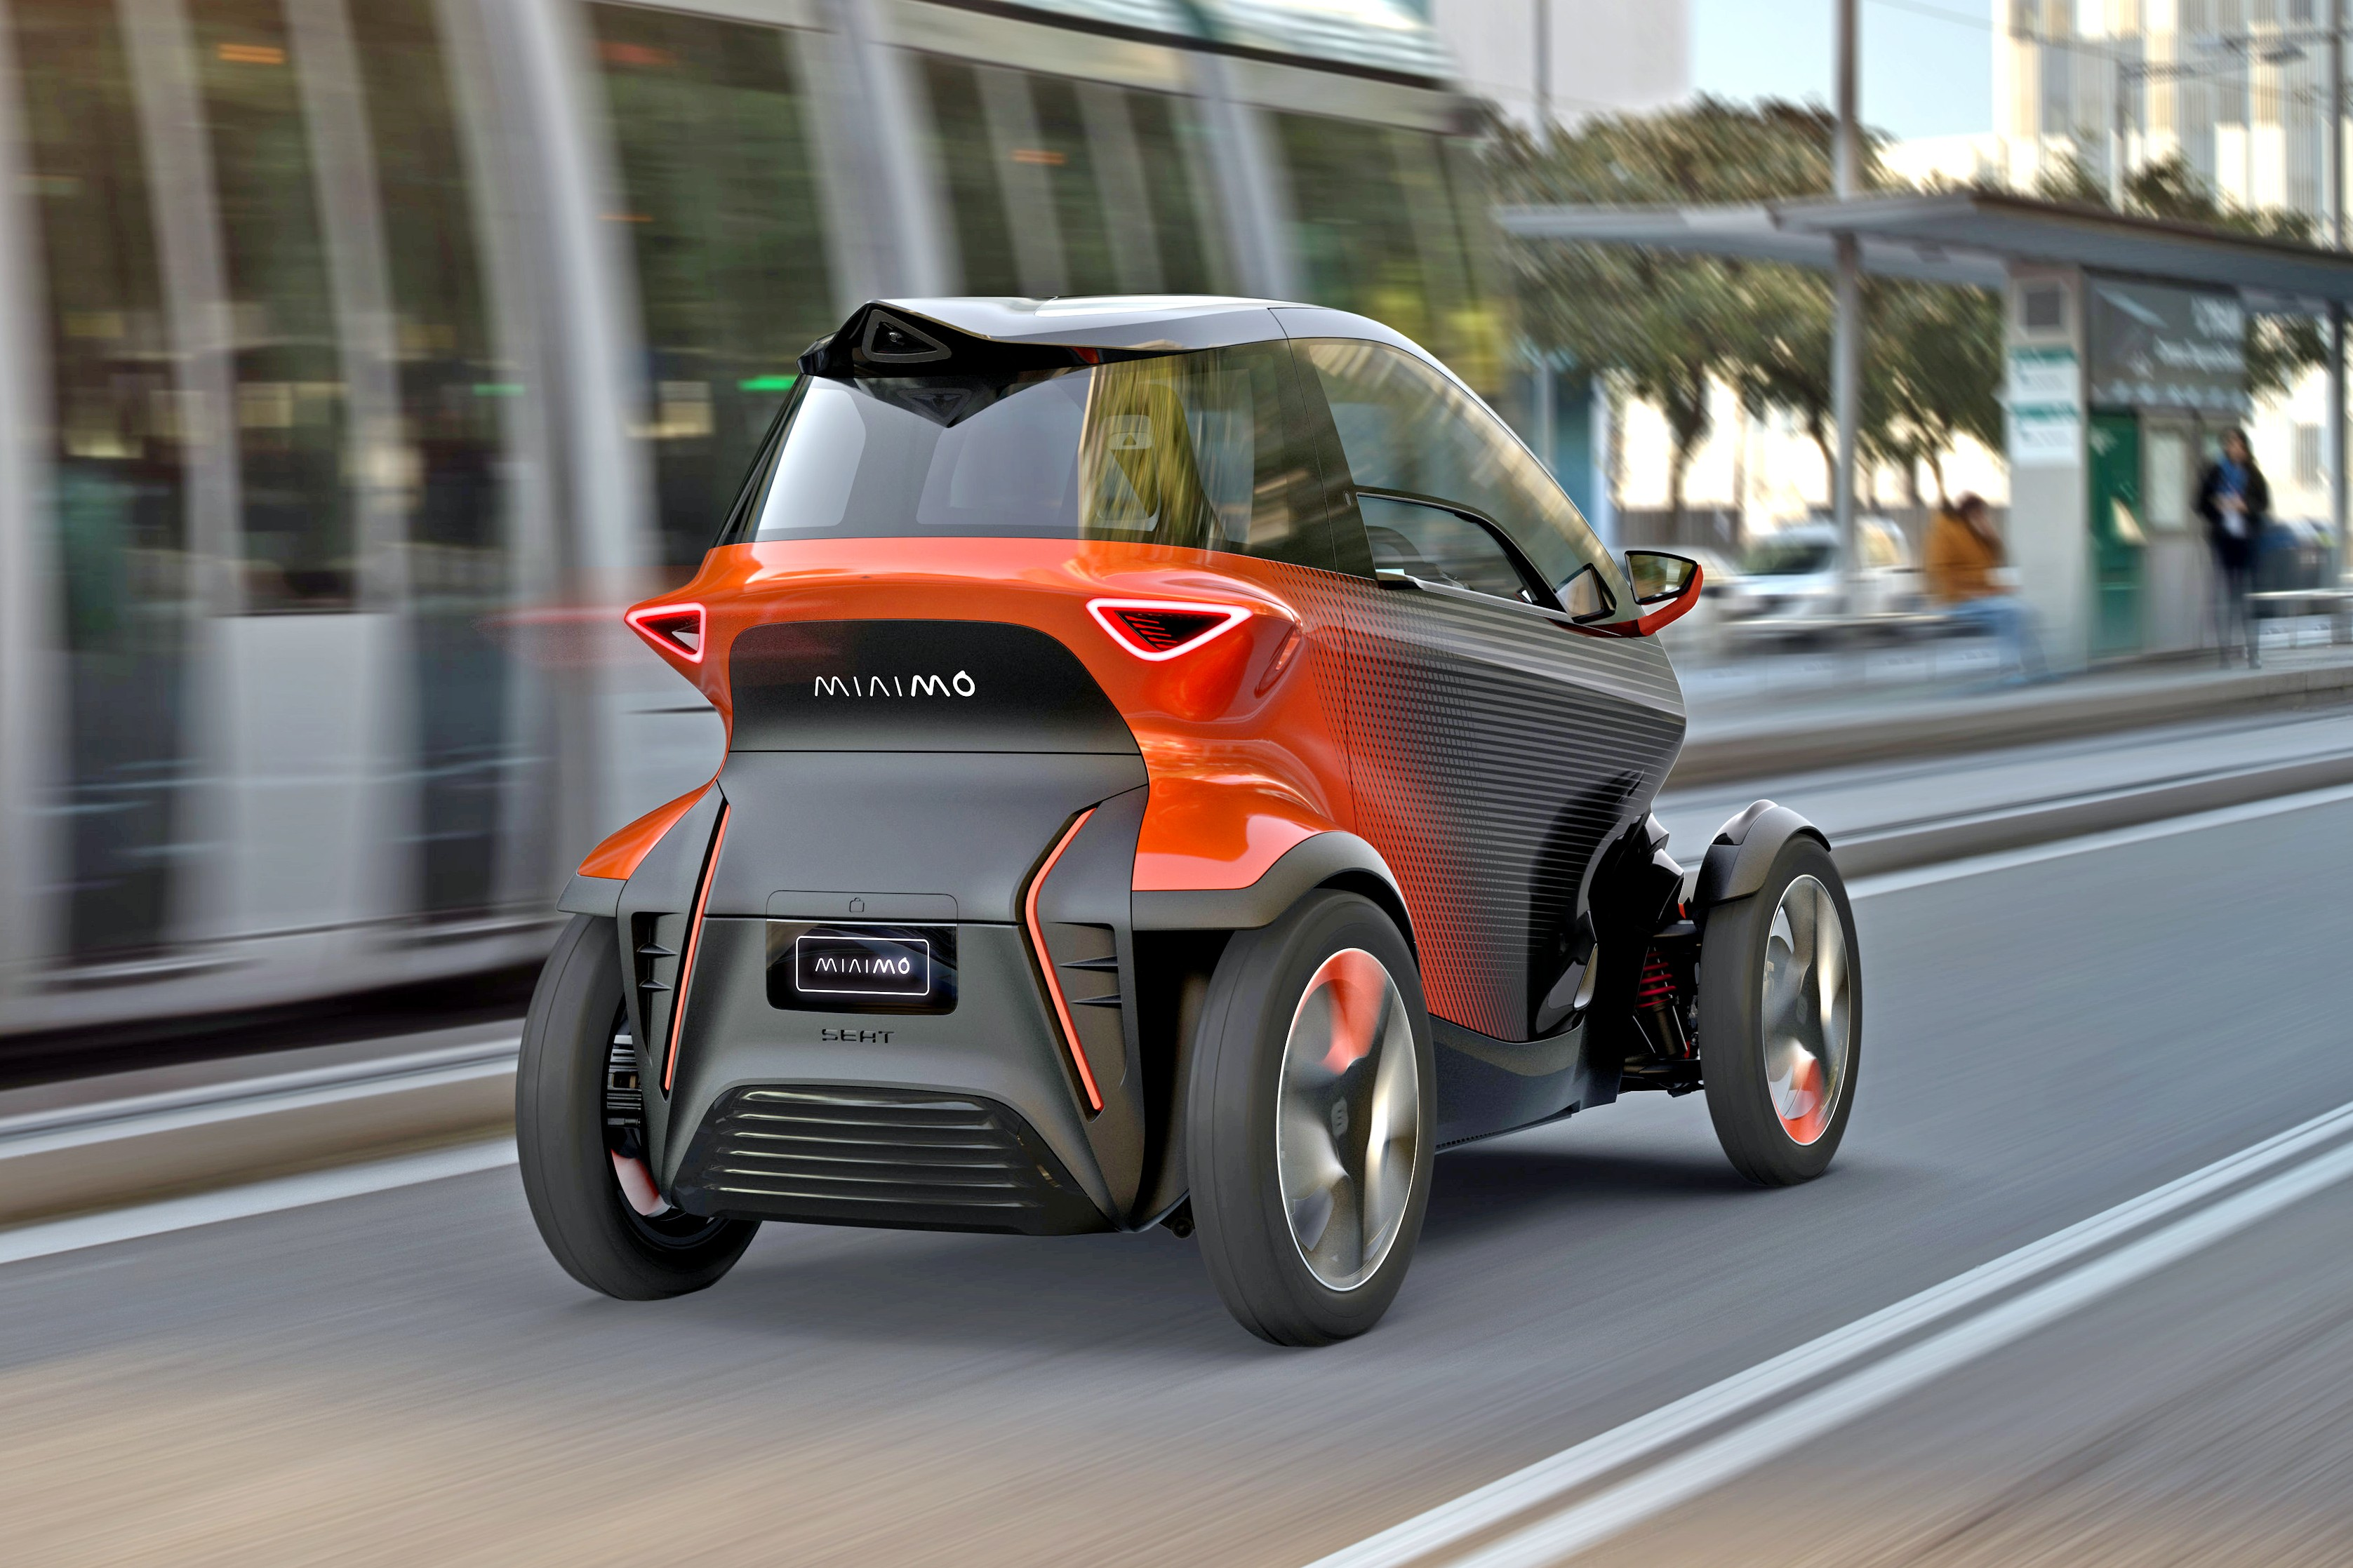 SEAT-Minimo-A-vision-of-the-future-of-urban-mobility_07_HQ